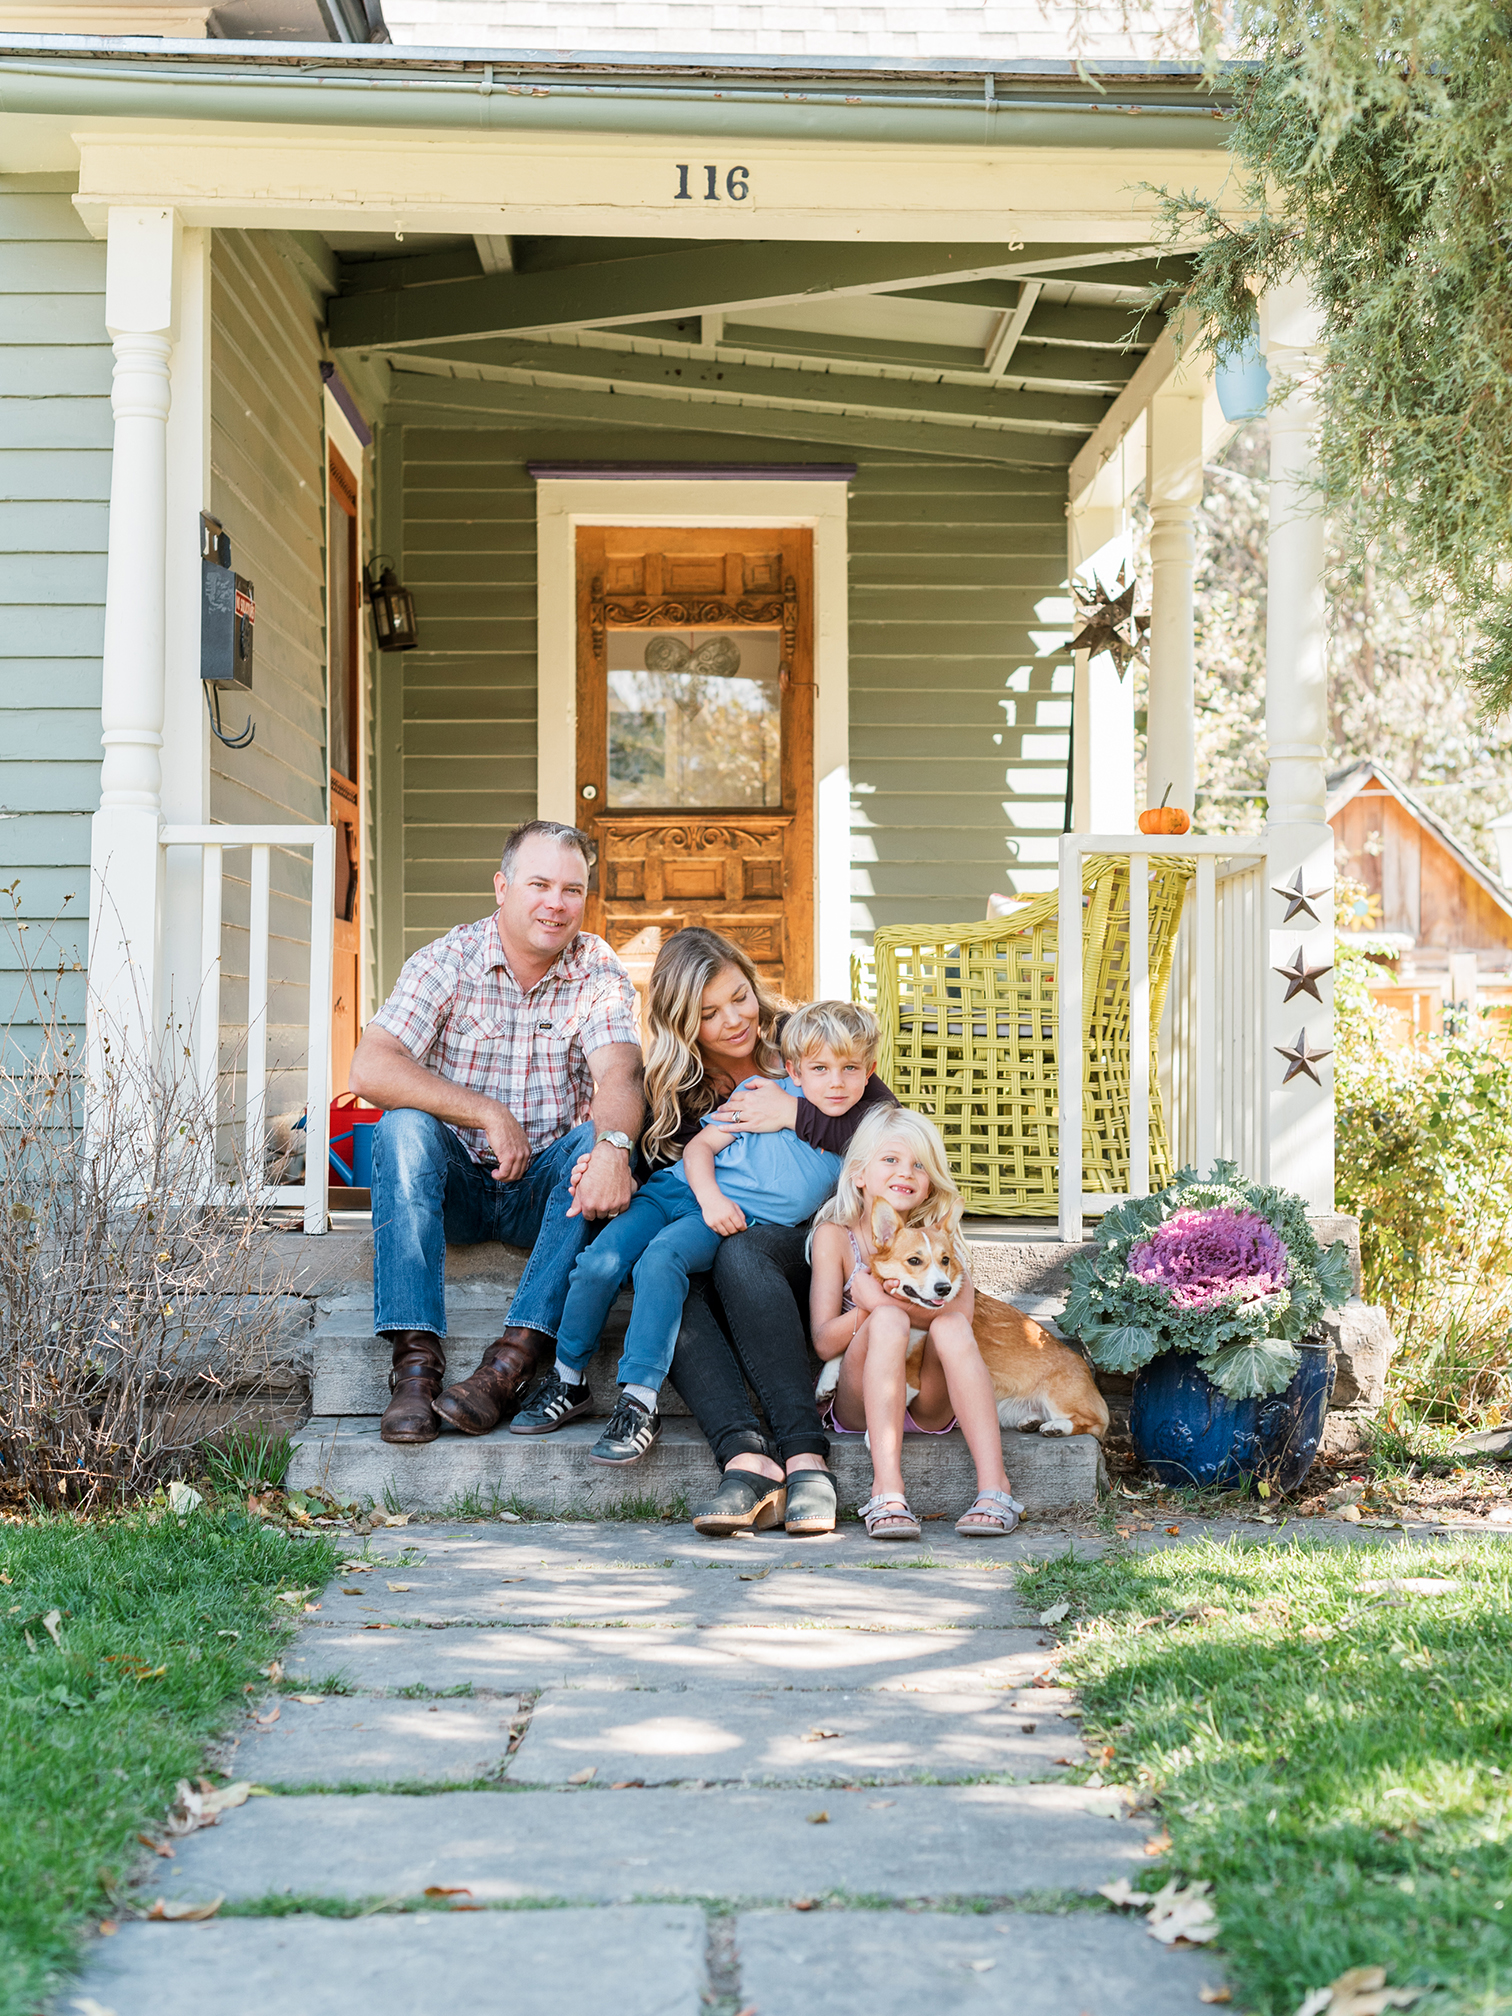 Fall Portraits, Colorado Family Portraits, Fort Collins Portrait Photographer, Fall Family Portraits, Mother with Children, Colorado Family Portraits, Family Sitting on Porch